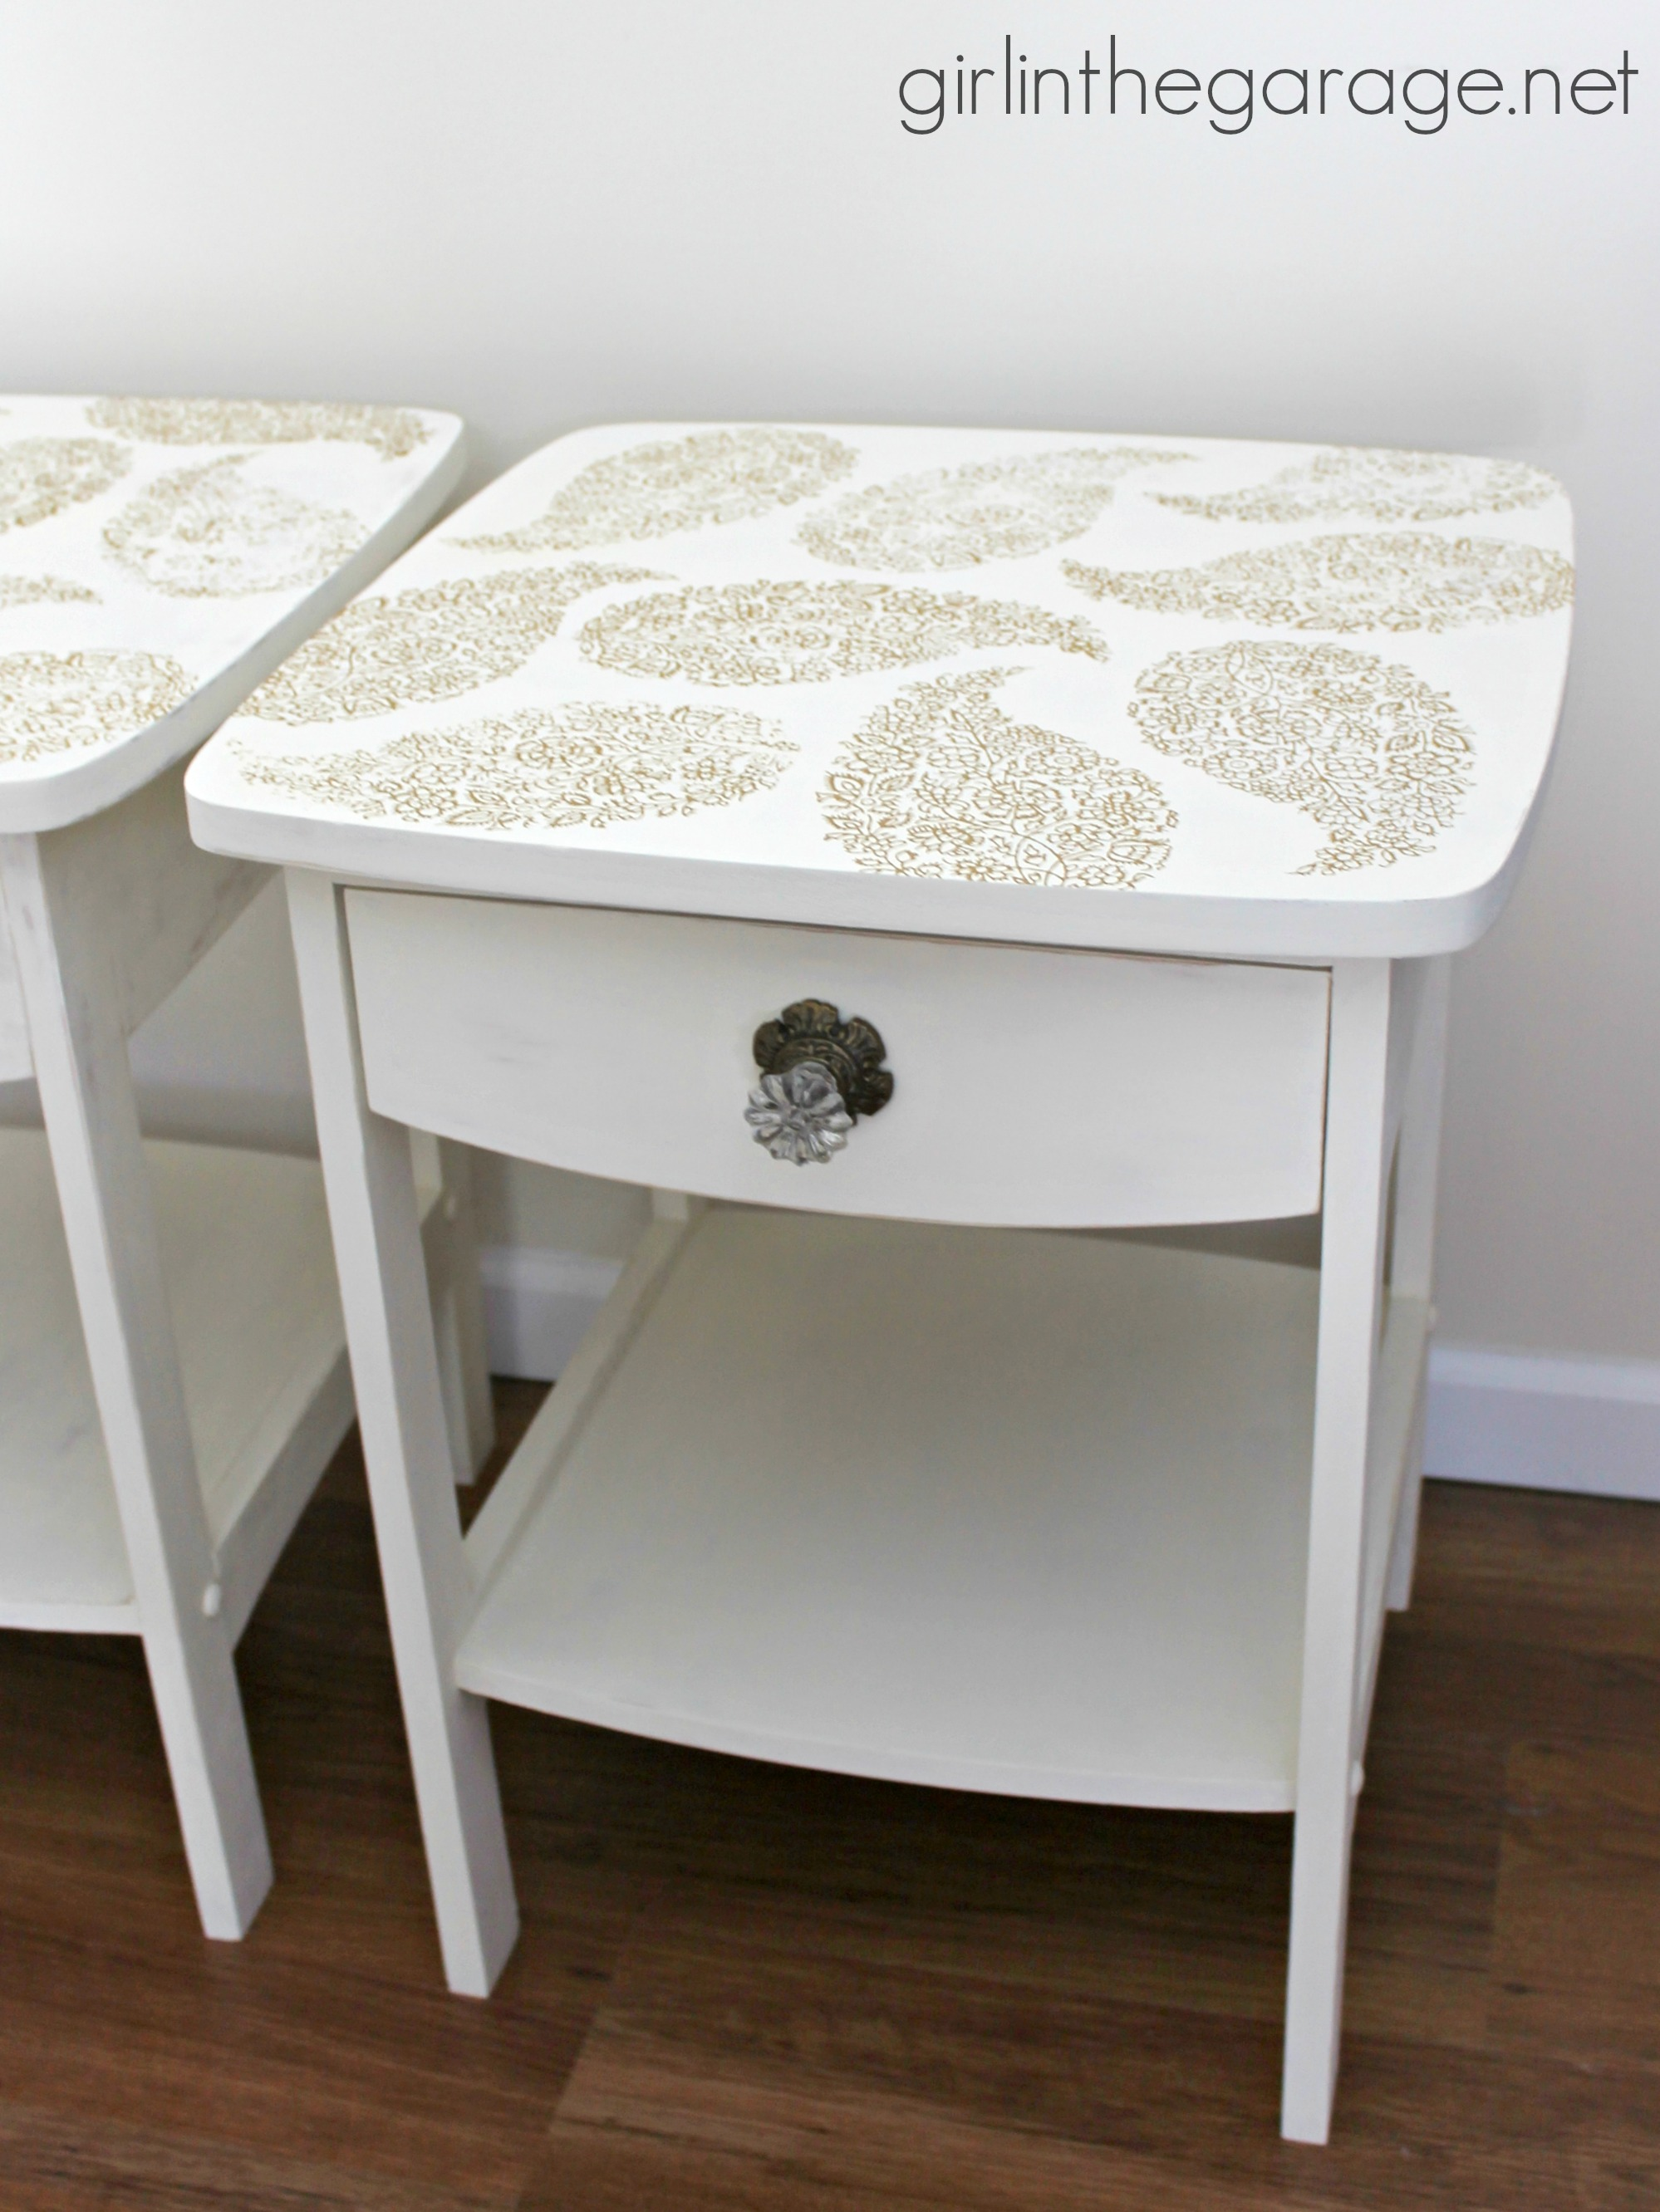 Pretty in Paisley Romance Themed Furniture Makeover  Girl in